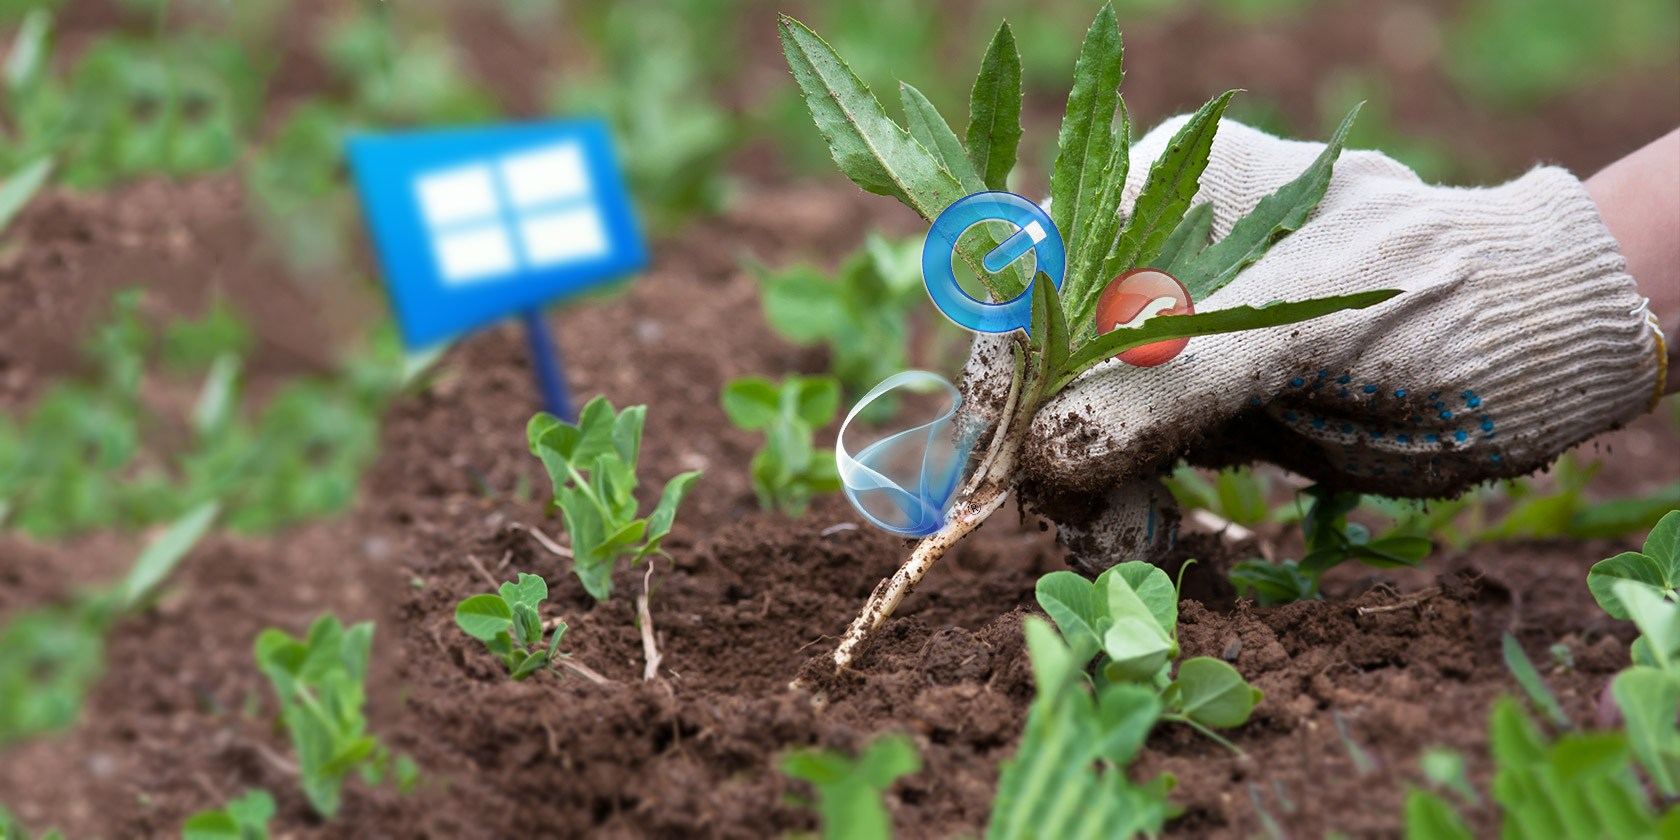 12 Unnecessary Windows Programs and Apps You Should Uninstall